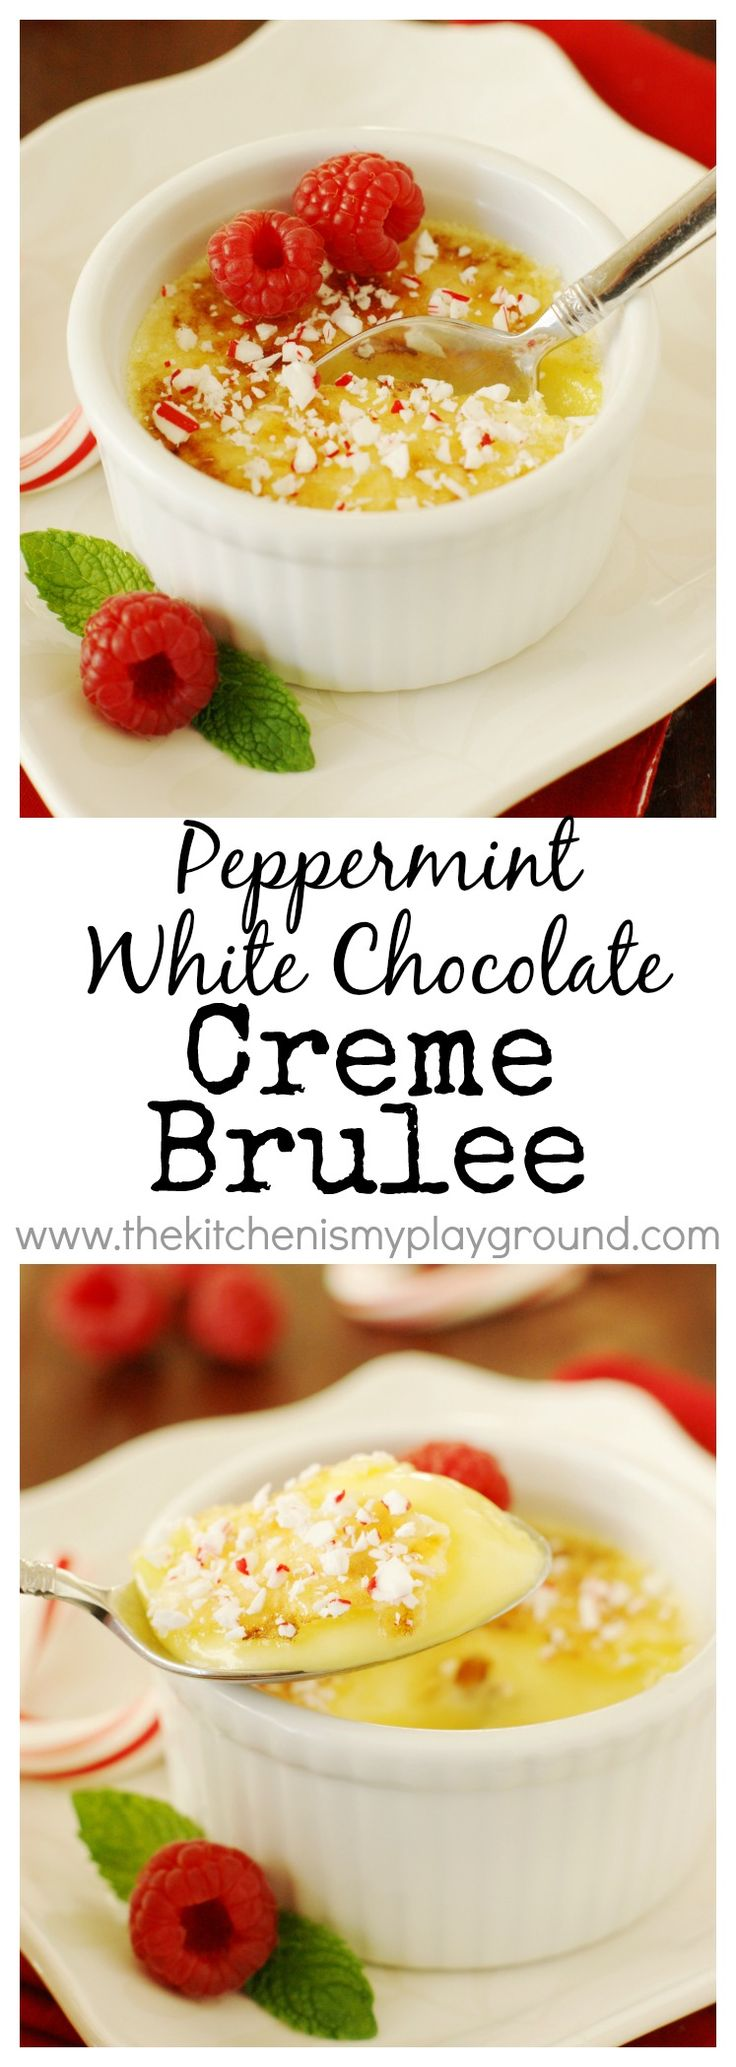 Peppermint-White Chocolate Creme Brulee ~ a beautifully festive ...